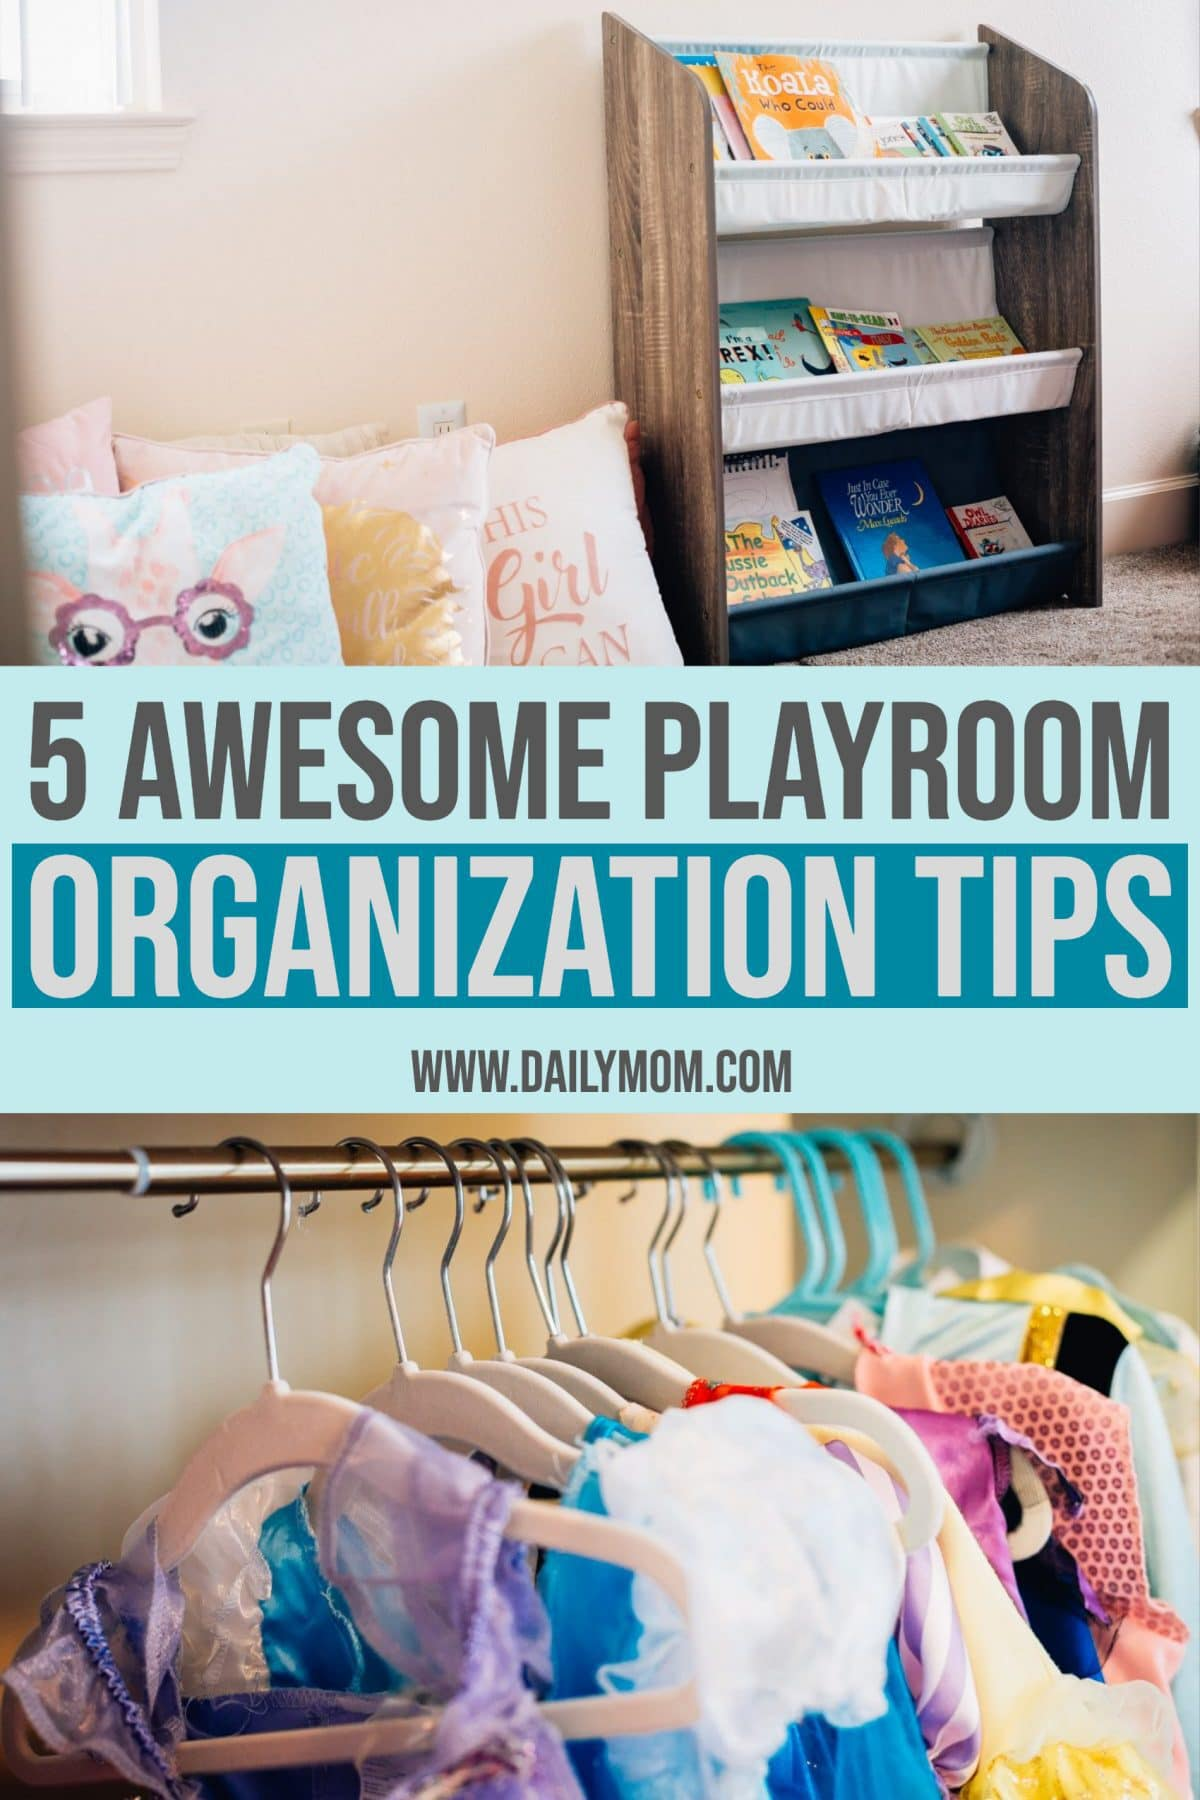 daily mom parents portal Awesome Playroom Organization Tips For The New Year